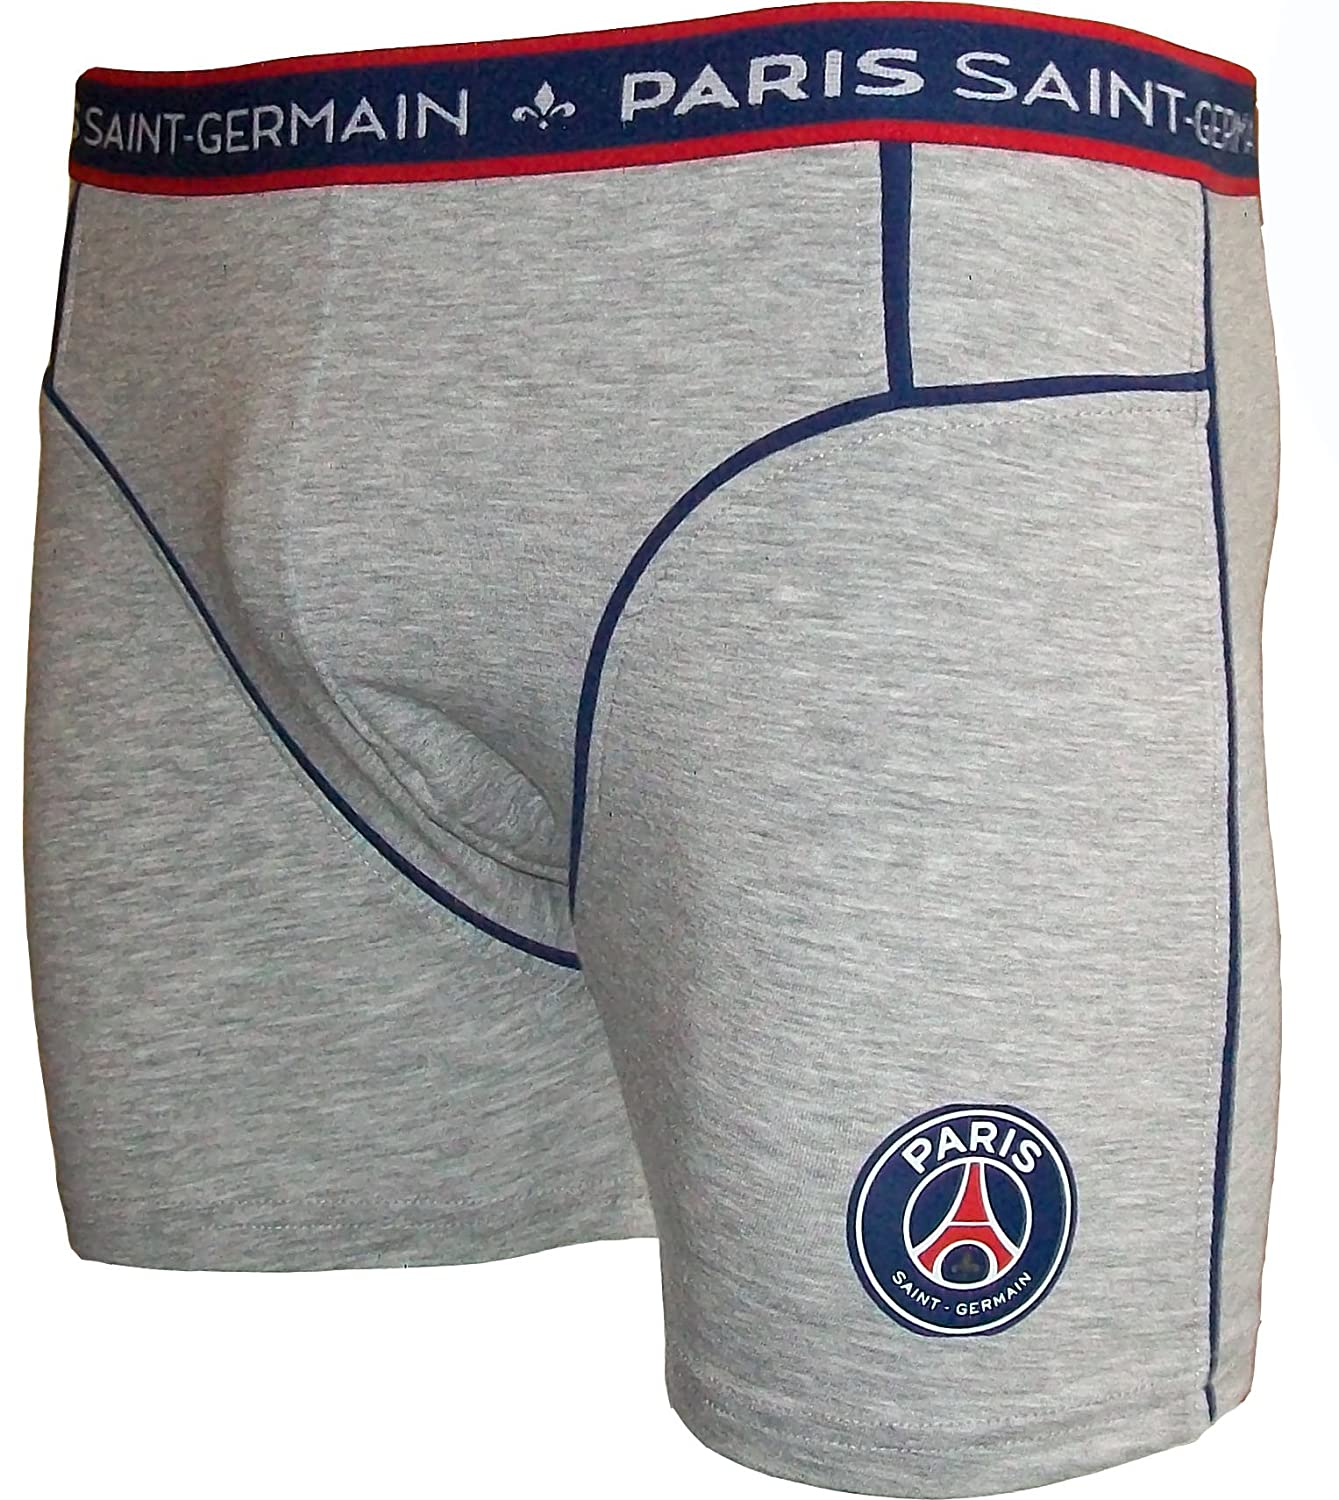 PARIS SAINT-GERMAIN Boxer Short PSG Collection Officielle Taille Enfant